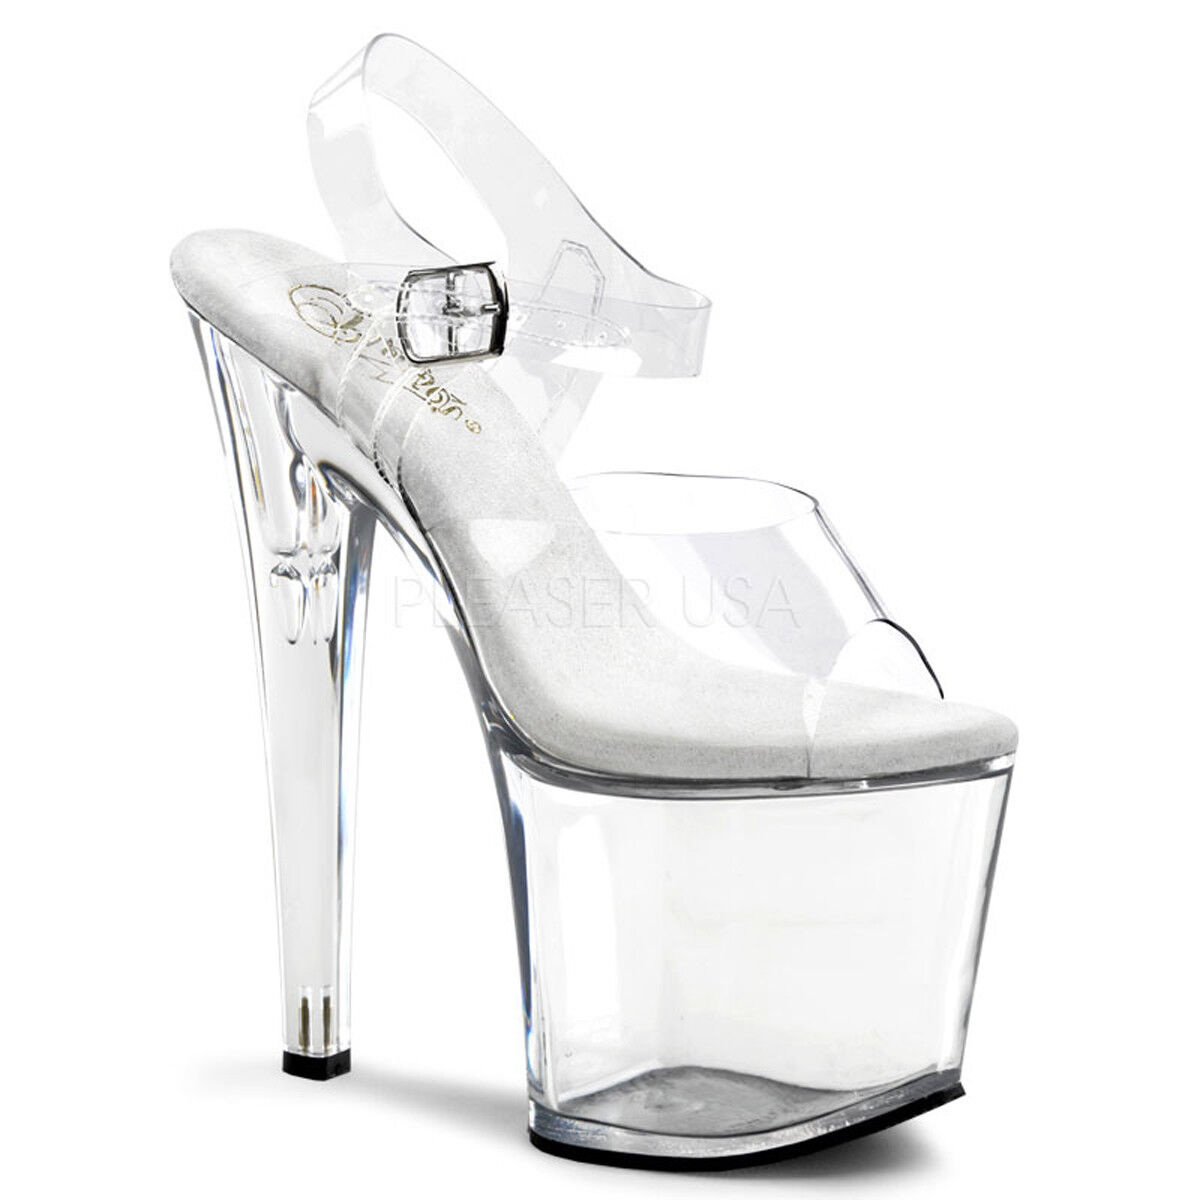 Pleaser TABOO-708 Platforms Exotic Dancing Clear Ankle Ankle Ankle Strap Open Toe High Heels 0a8797